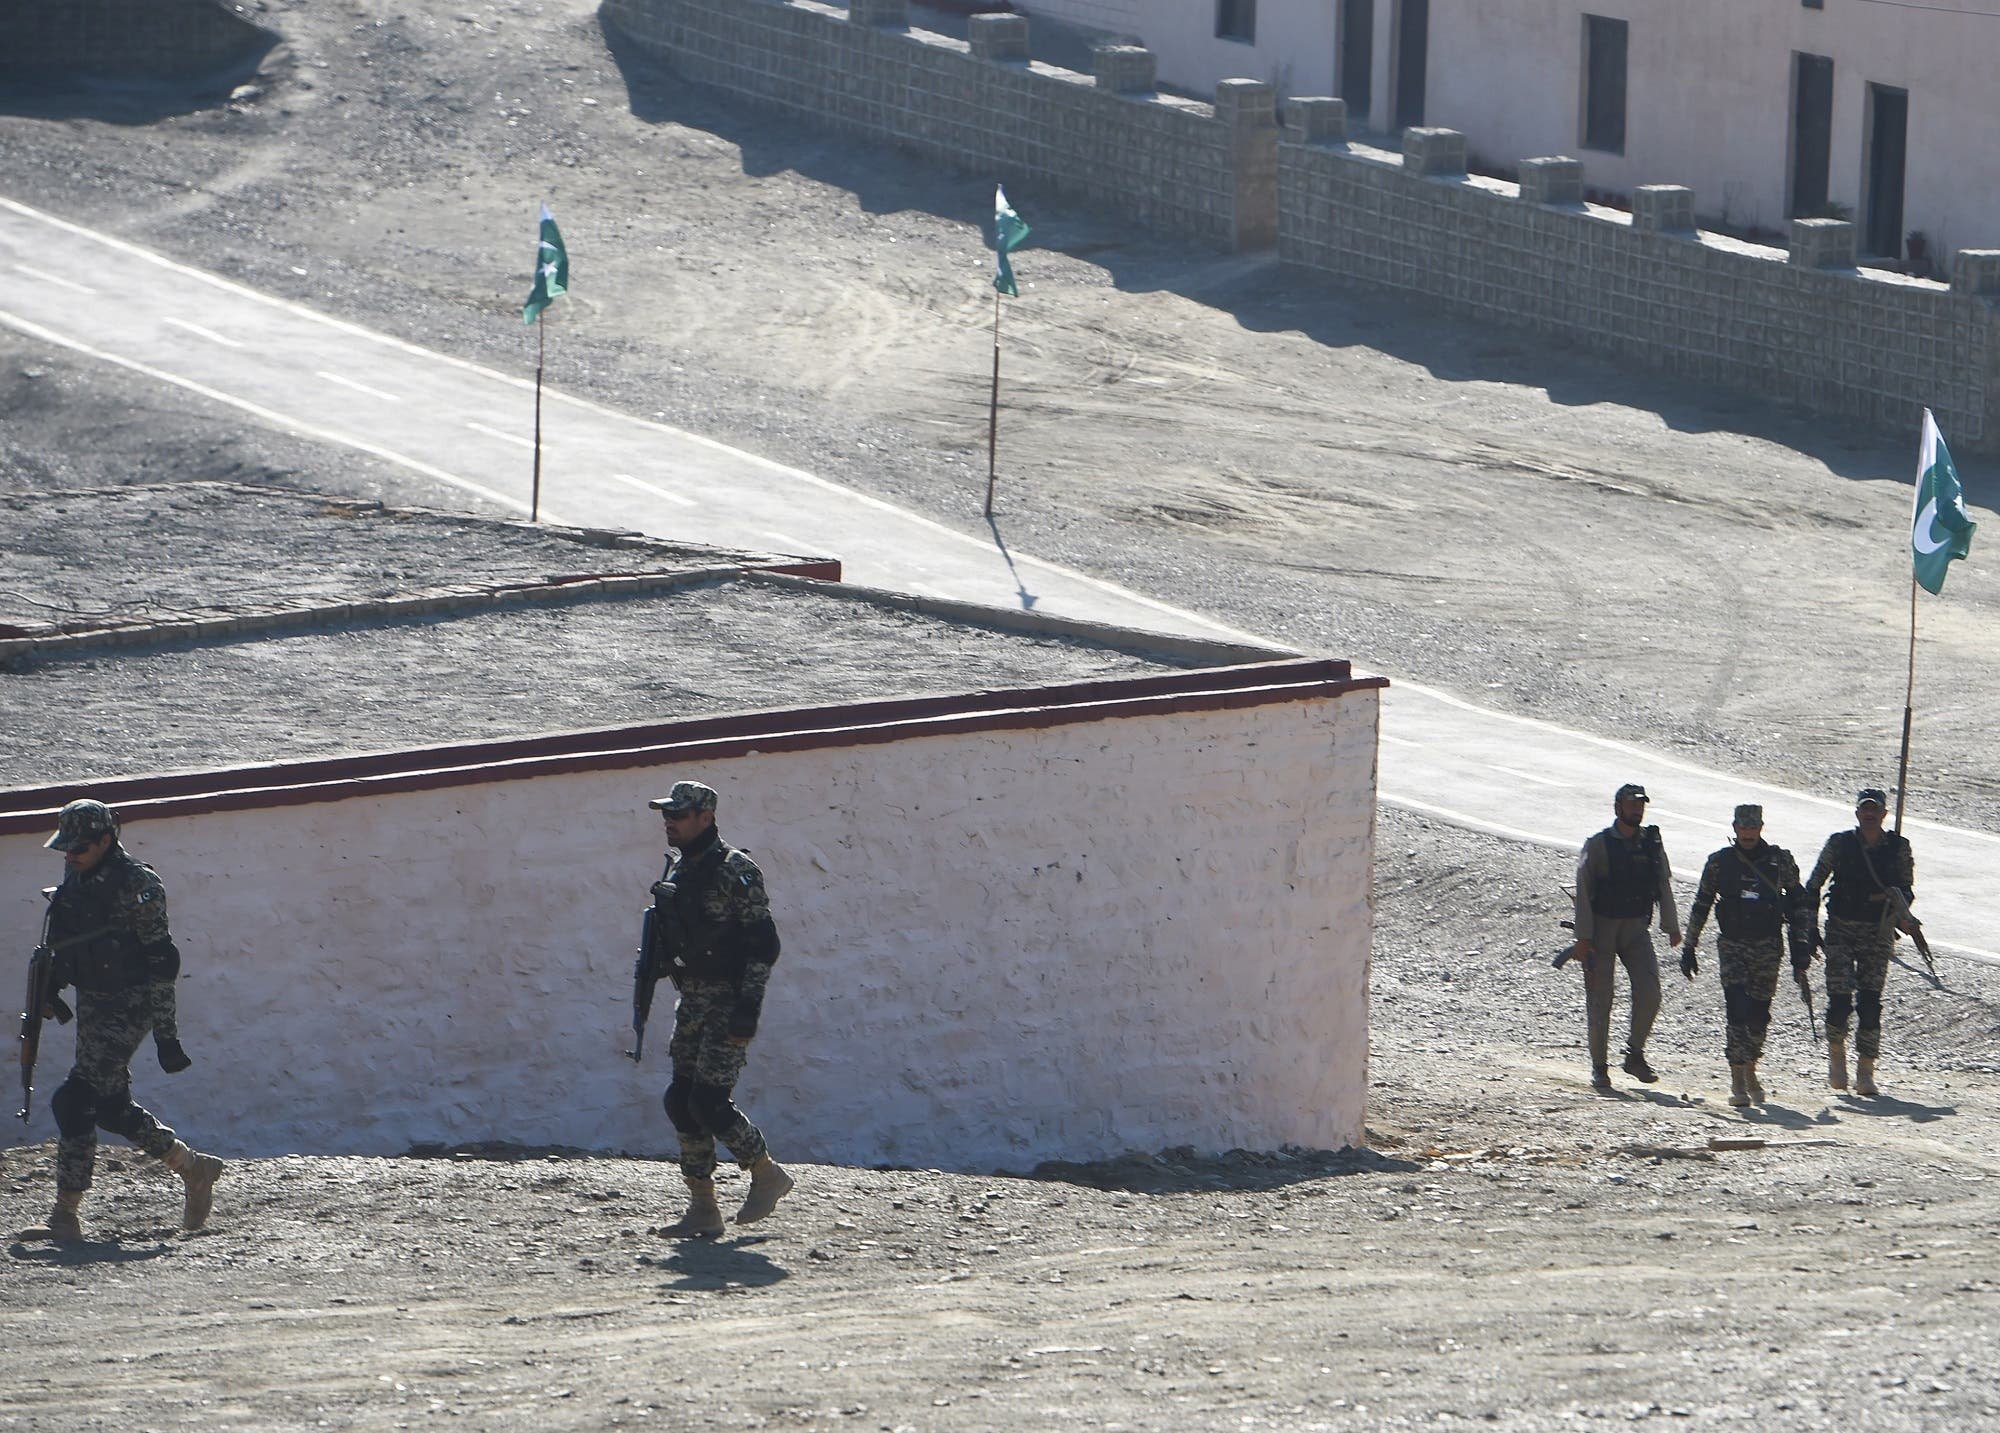 Pakistani army soldiers walk near a border terminal in Ghulam Khan, a town in North Waziristan, on the border between Pakistan and Afghanistan, on January 27, 2019. (AFP)